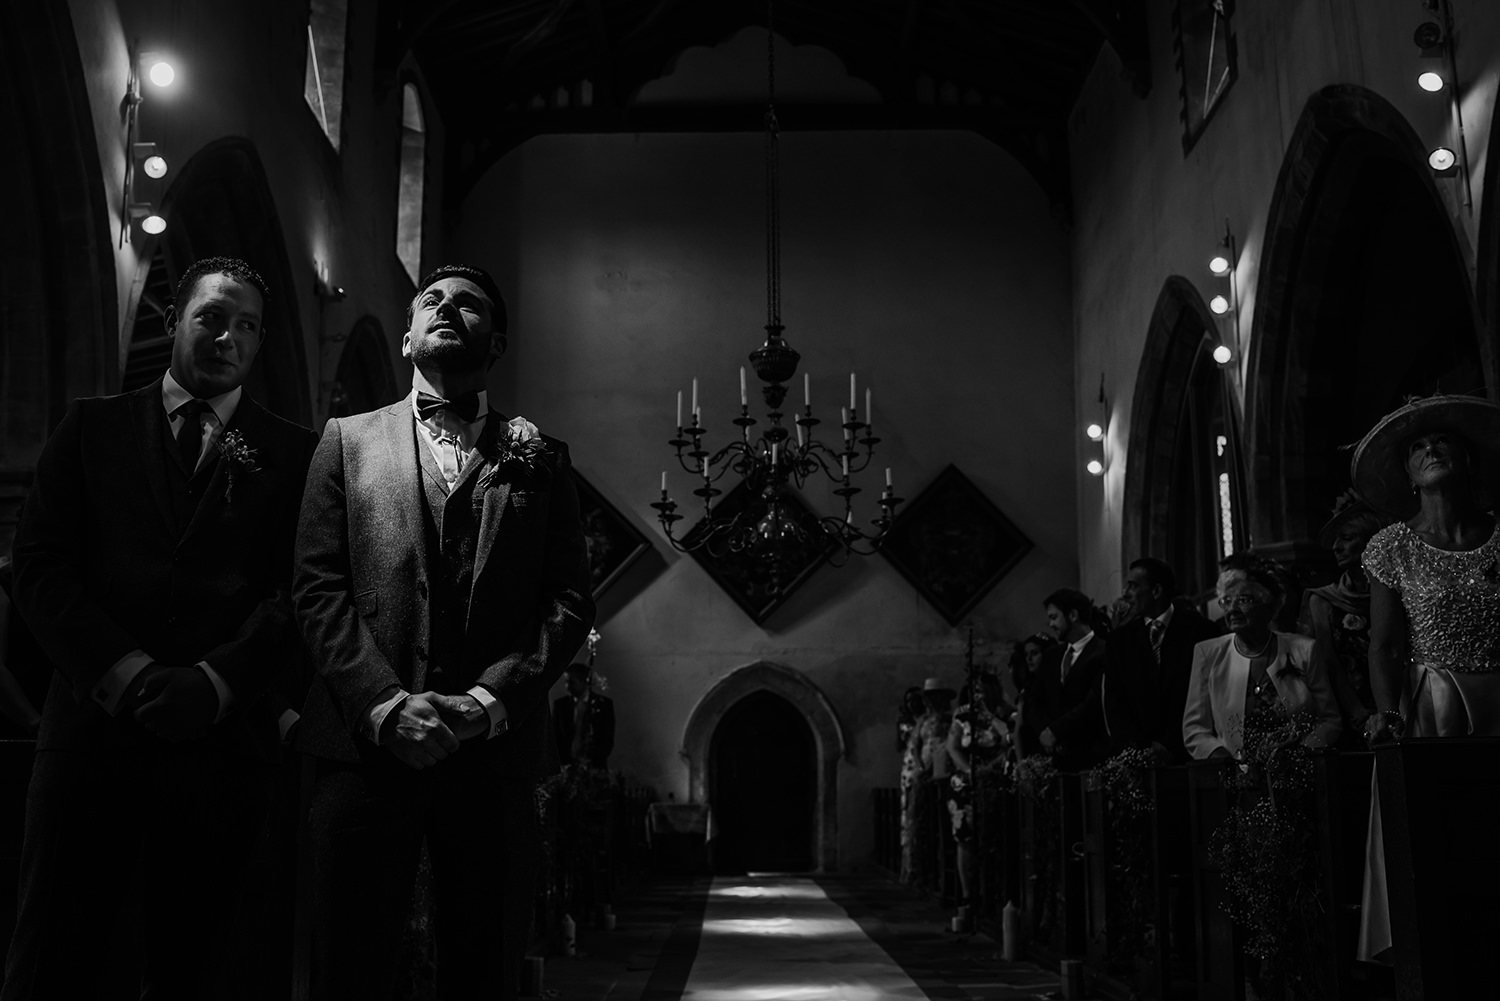 bw photo. Nervous groom takes a deep breath